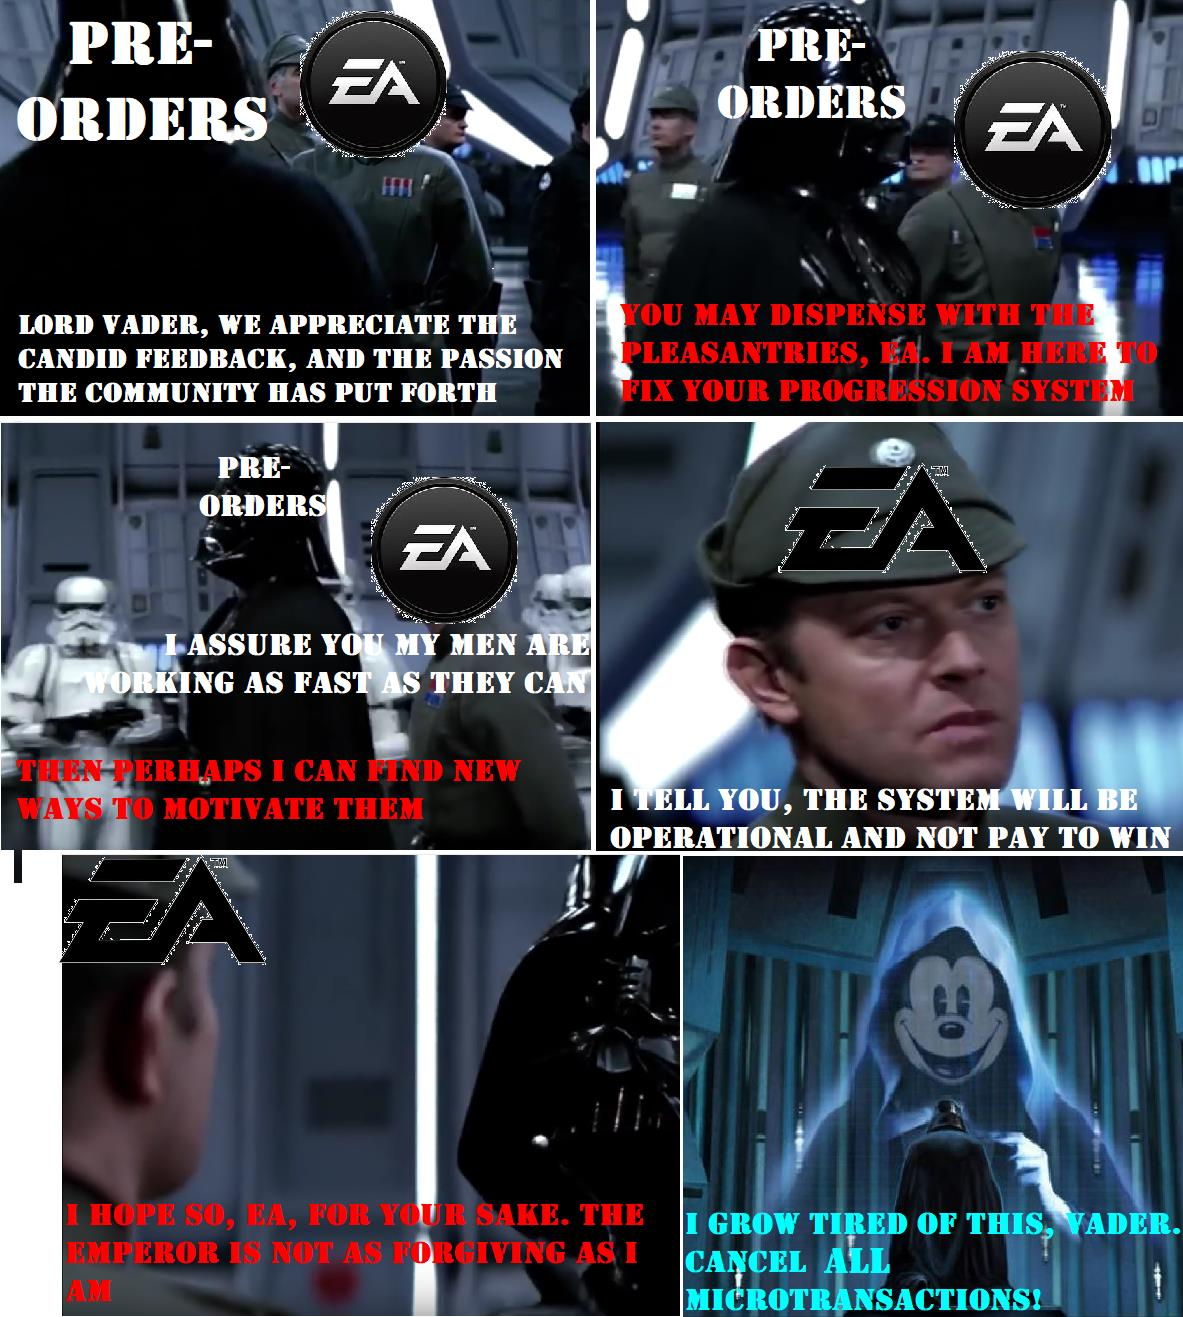 The Emperor Is Not As Forgiving Star Wars Battlefront Ii Unlockable Heroes Controversy Know Your Meme